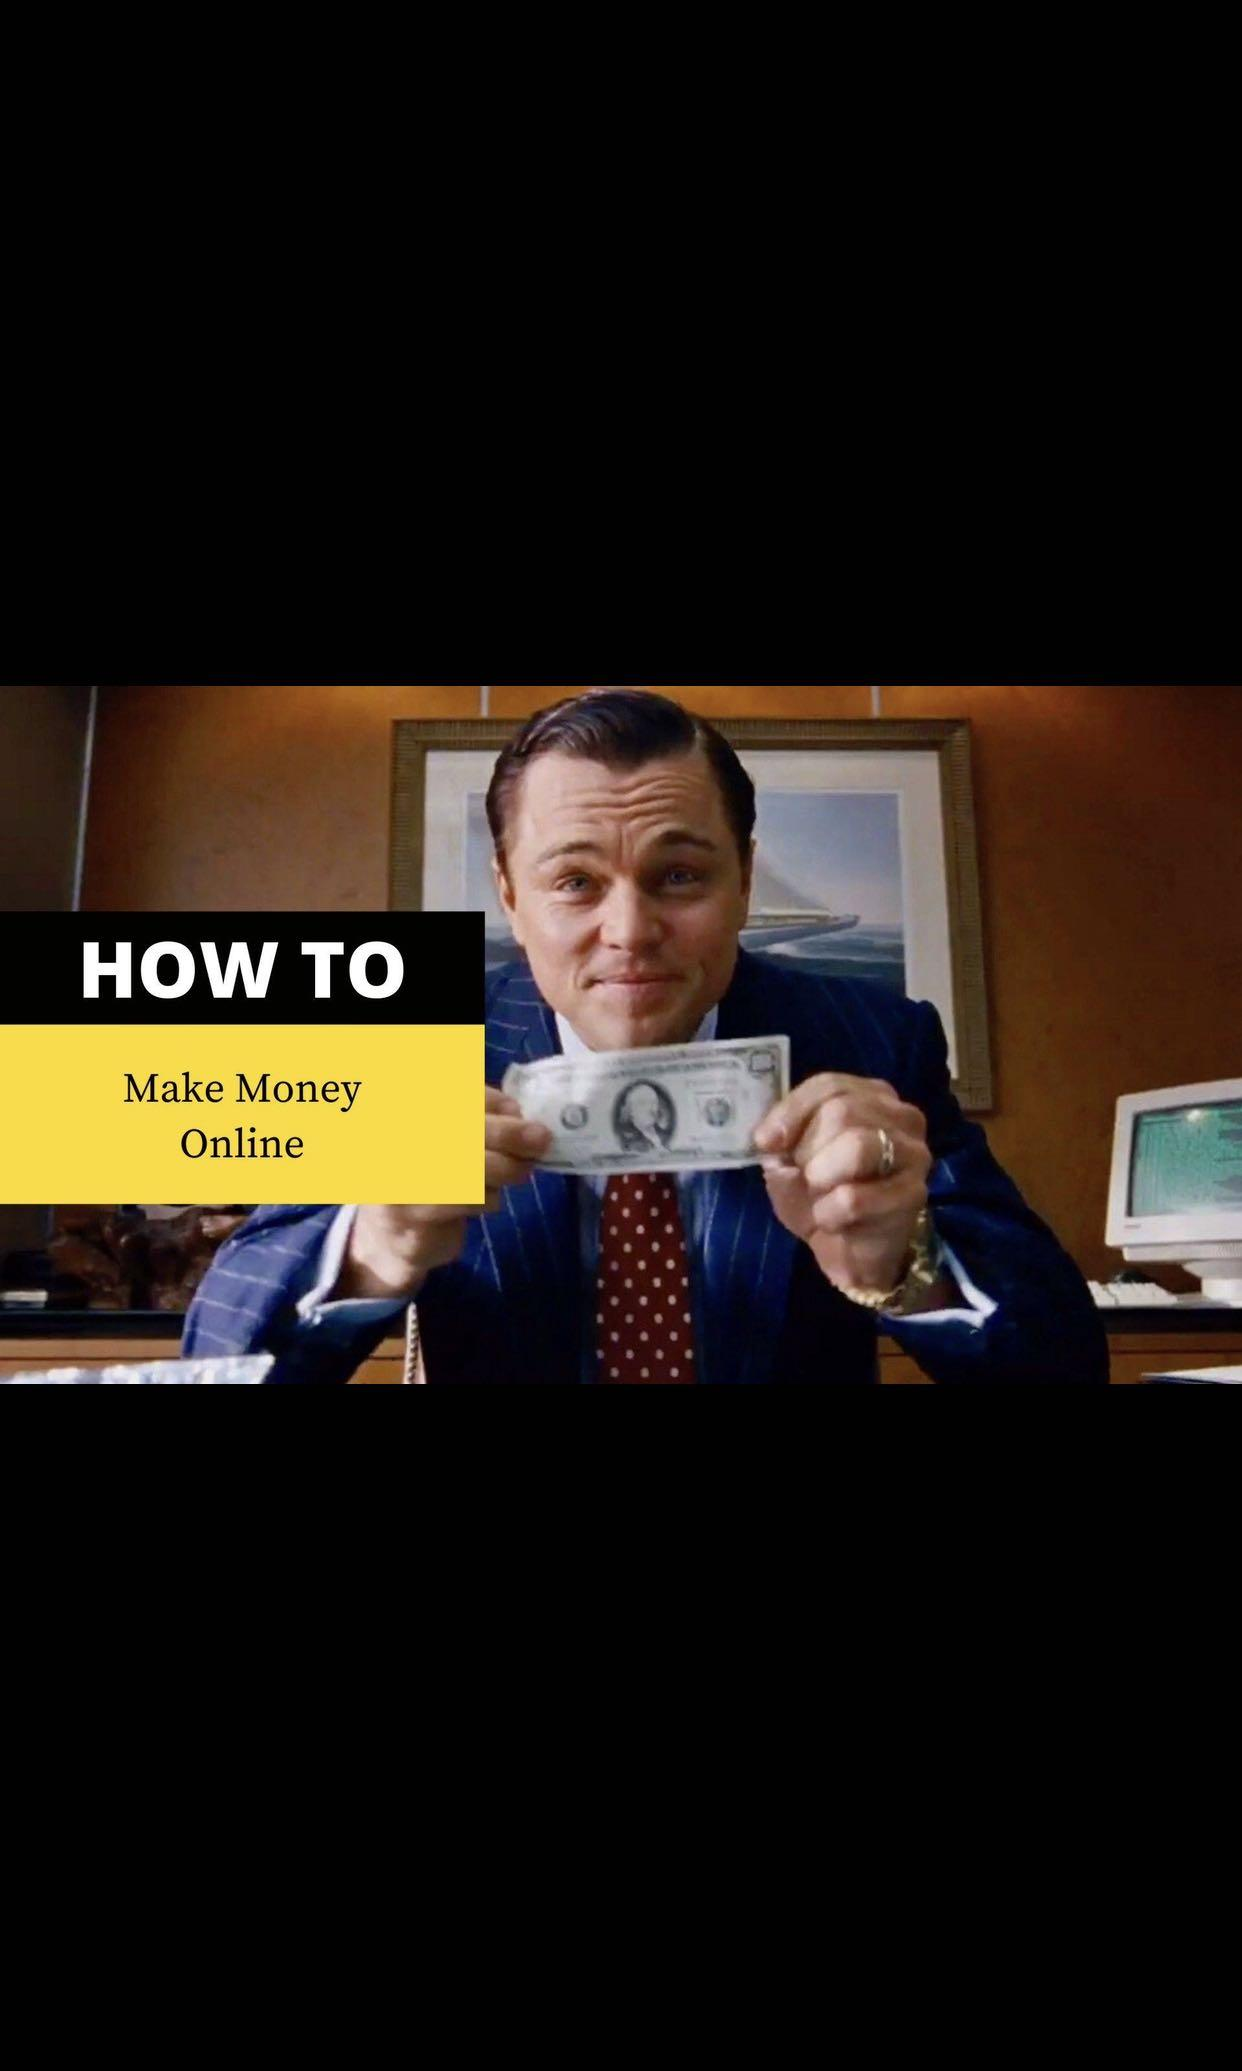 Learn how to make money online only for serious people